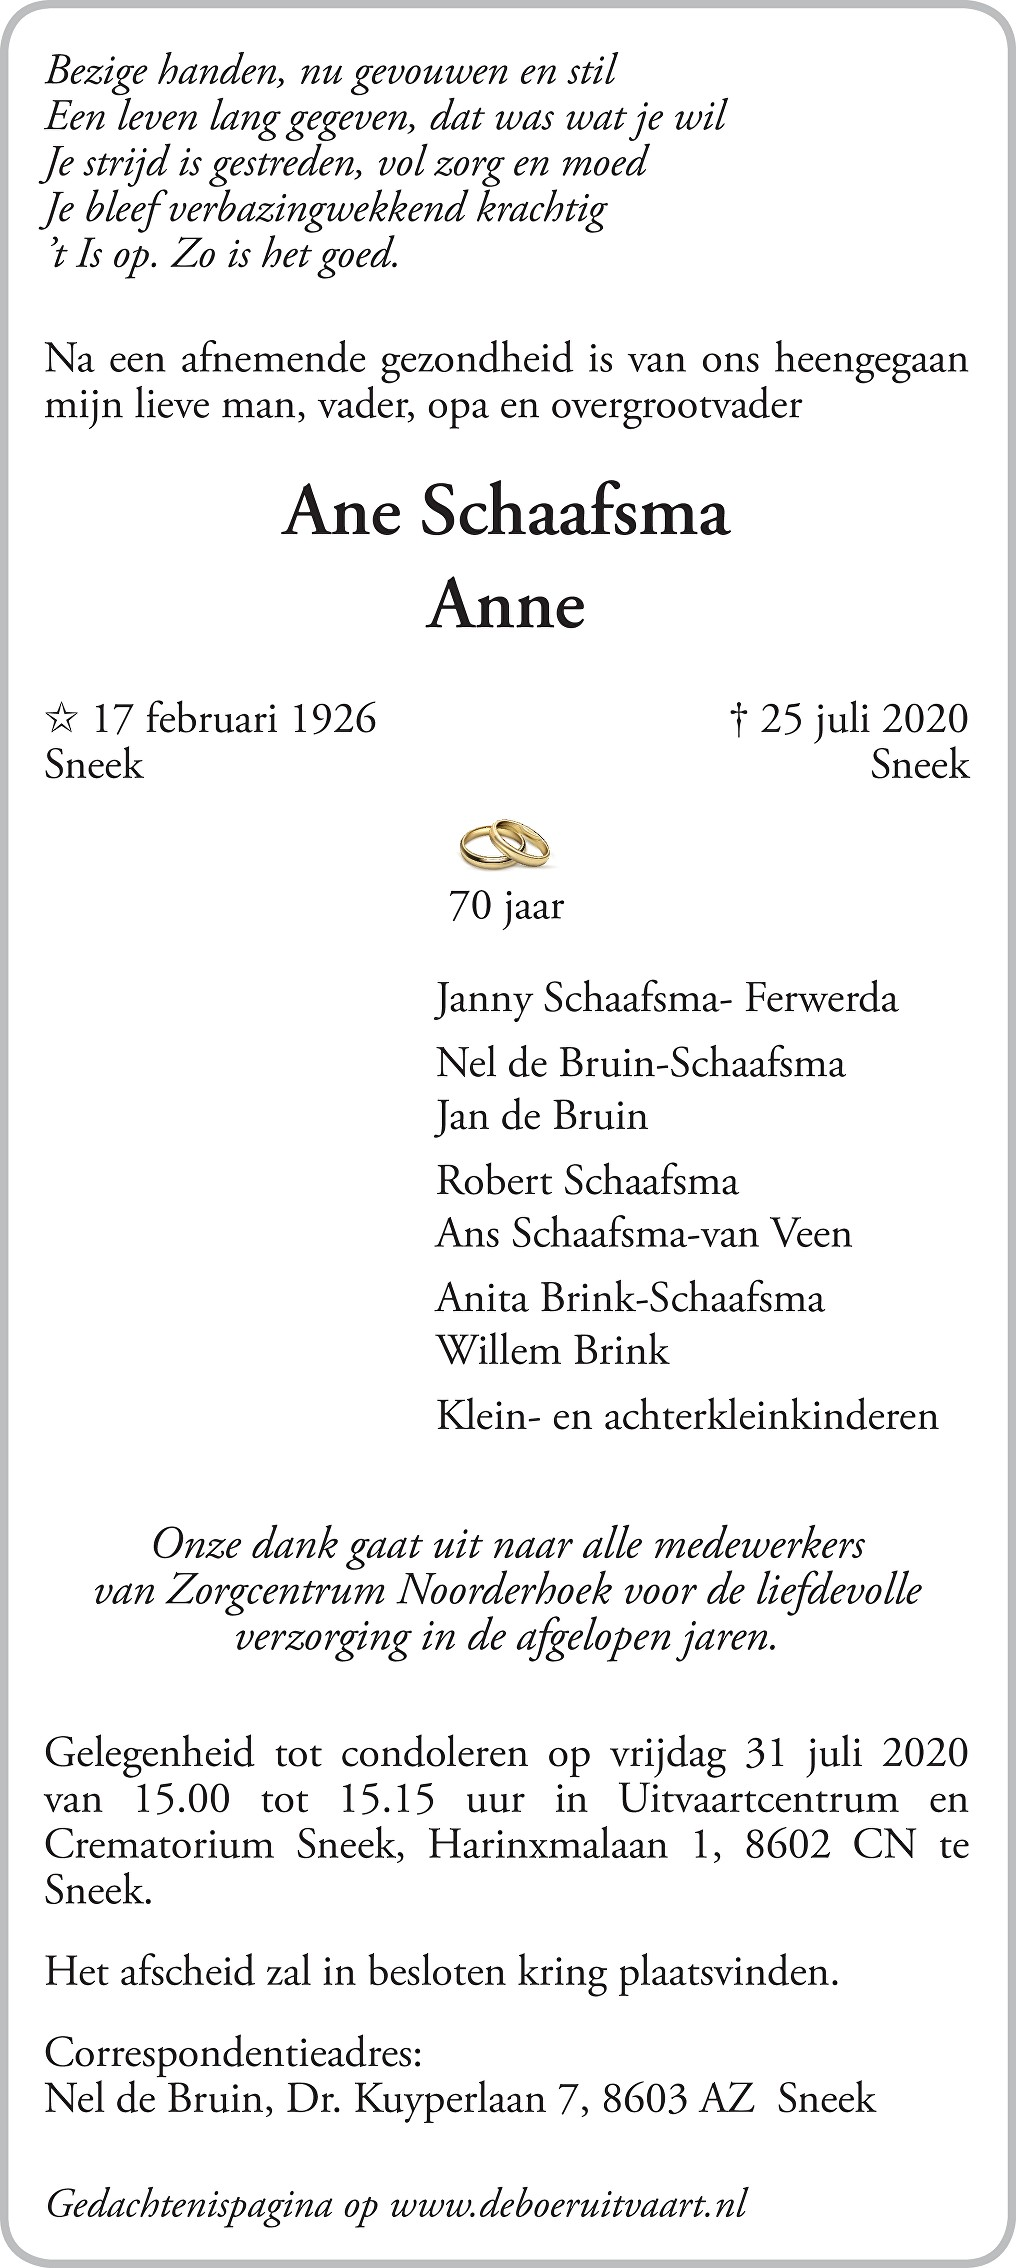 Anne Schaafsma Death notice